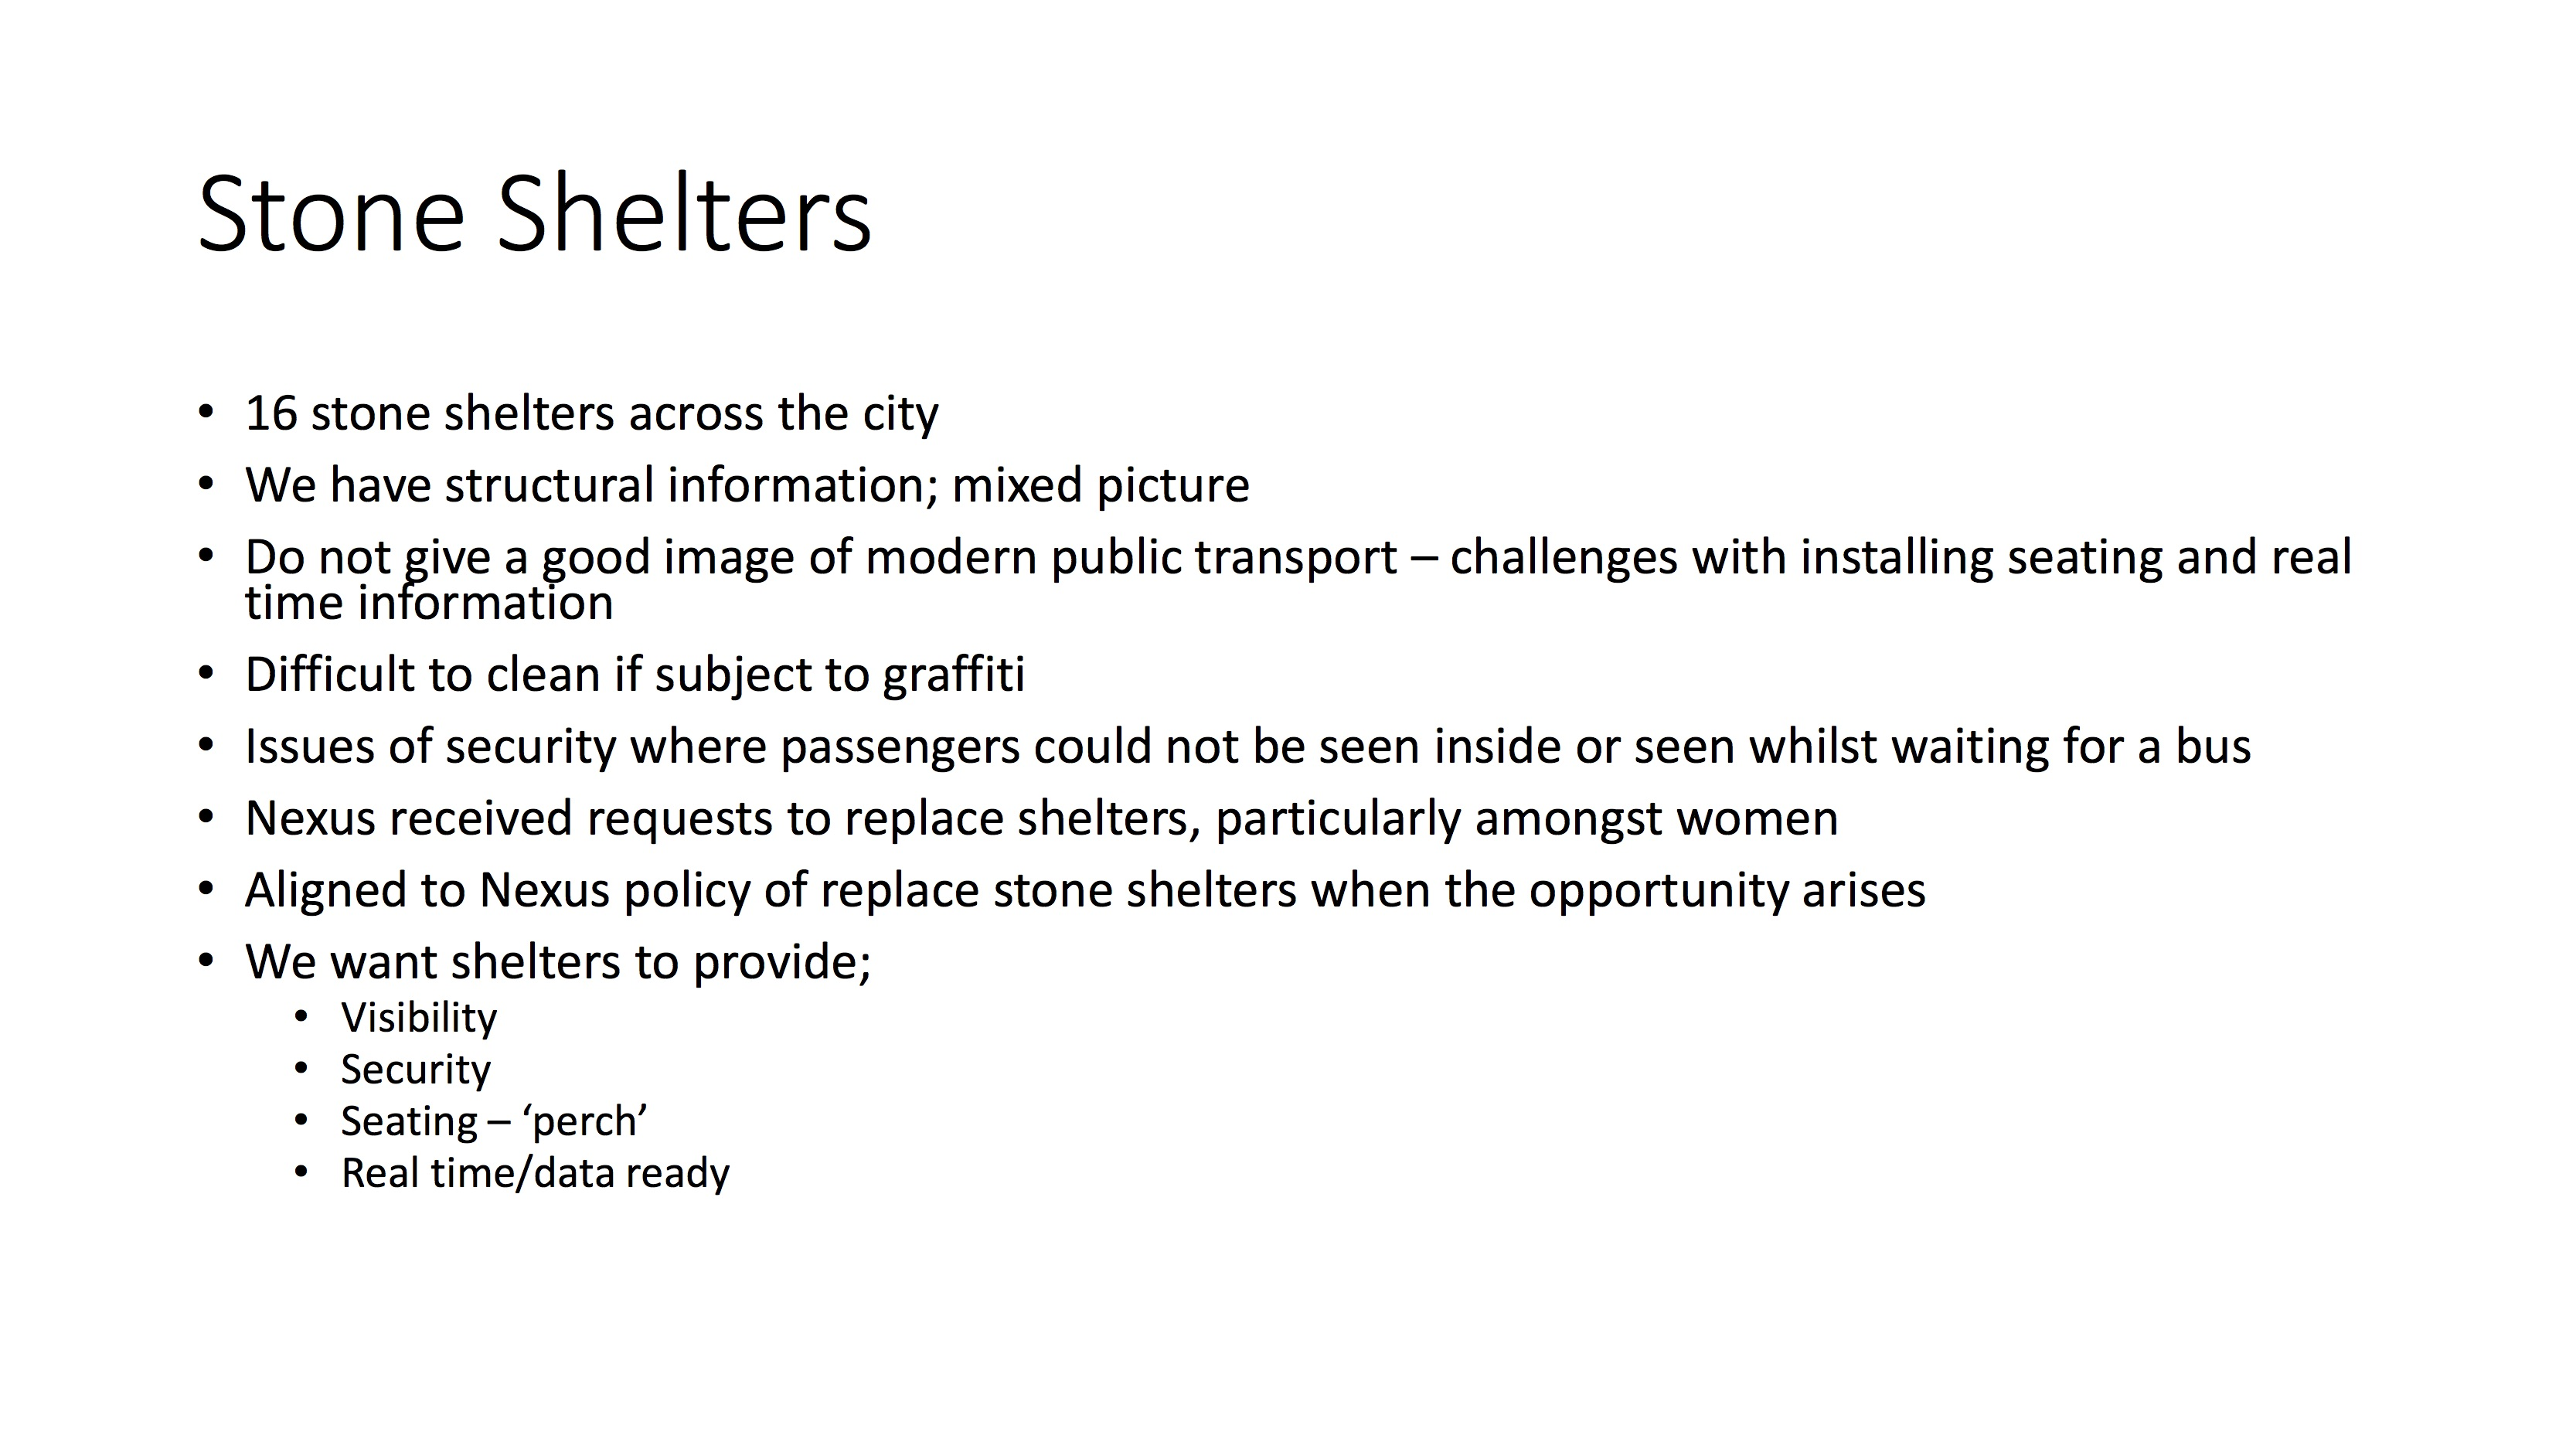 Council slide presentation setting out issues with the existing shelters